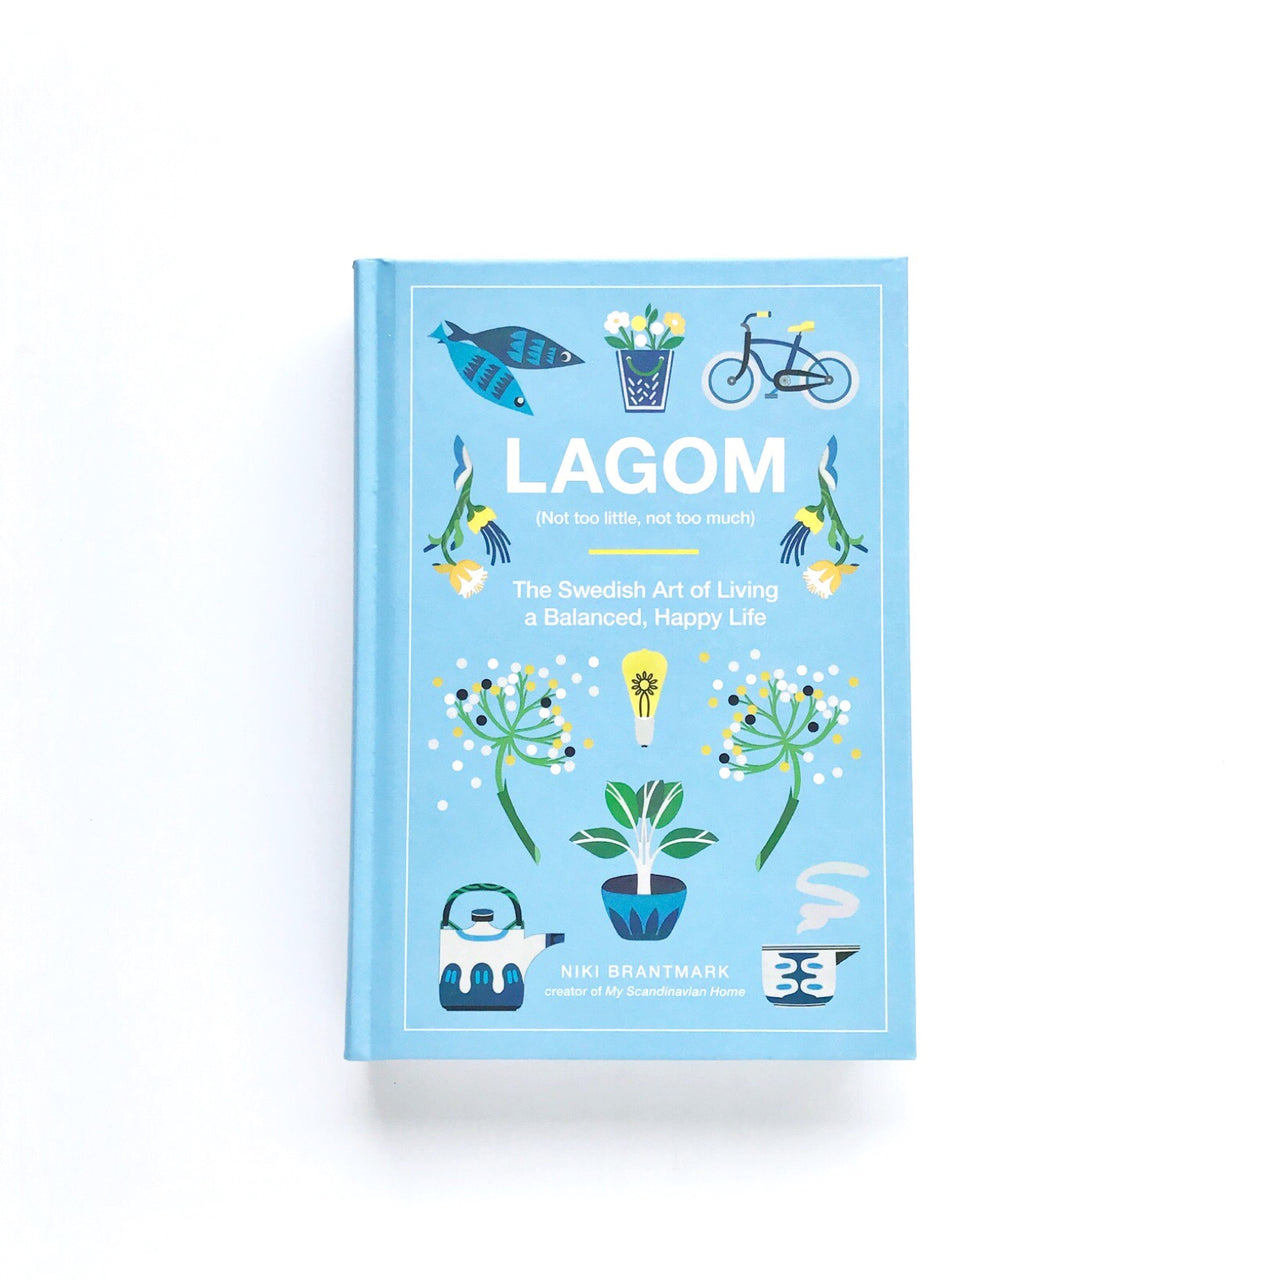 lagom: not too little, not too much, just right